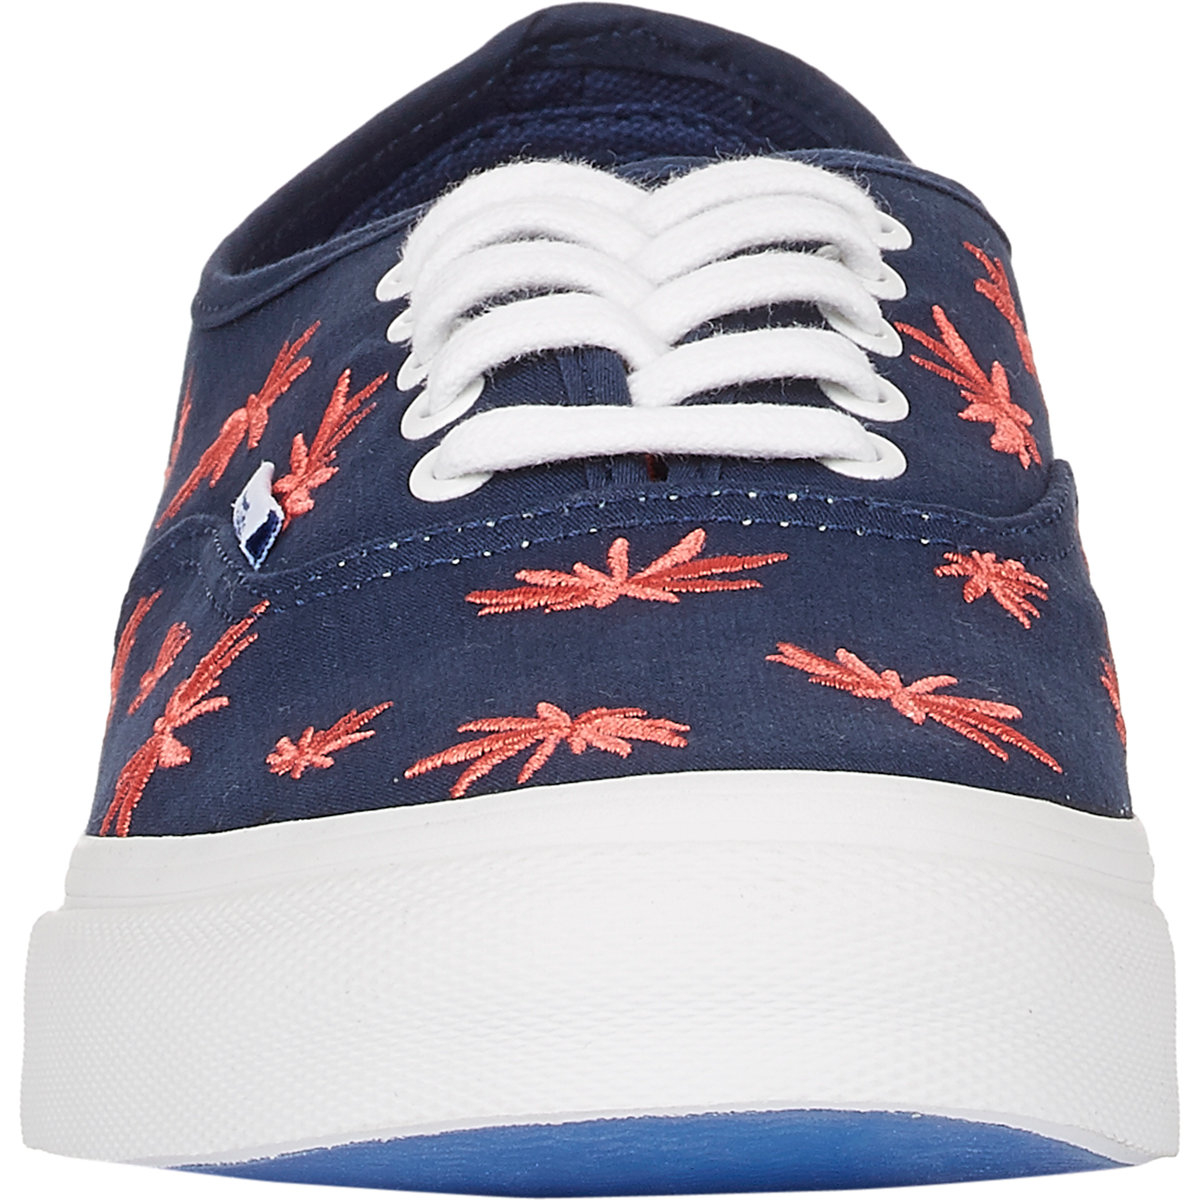 2bc3df980e1 Lyst - Vans Palm Tree Authentic Lx Sneakers in Blue for Men